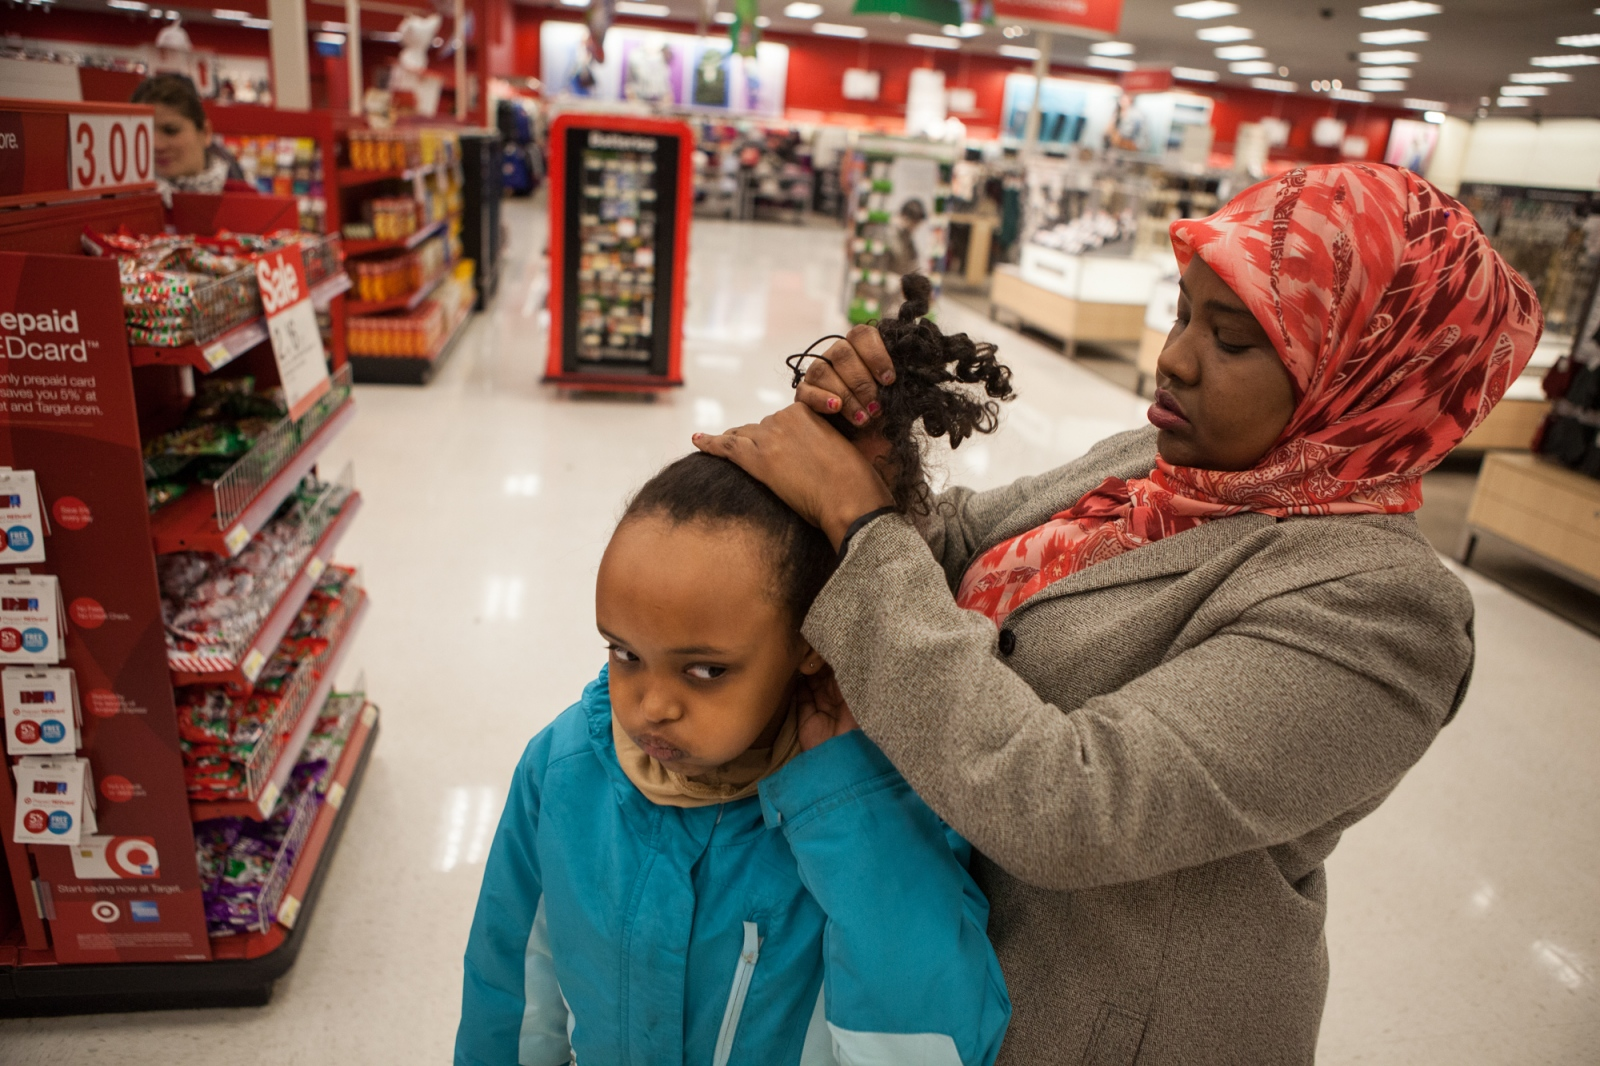 Saciido Shaie fixes her daughter's hair at a Target in Minneapolis. Ms. Shaie says she and her husband never asked the children to wear a hijab, but that normally they insist on doing so themselves.